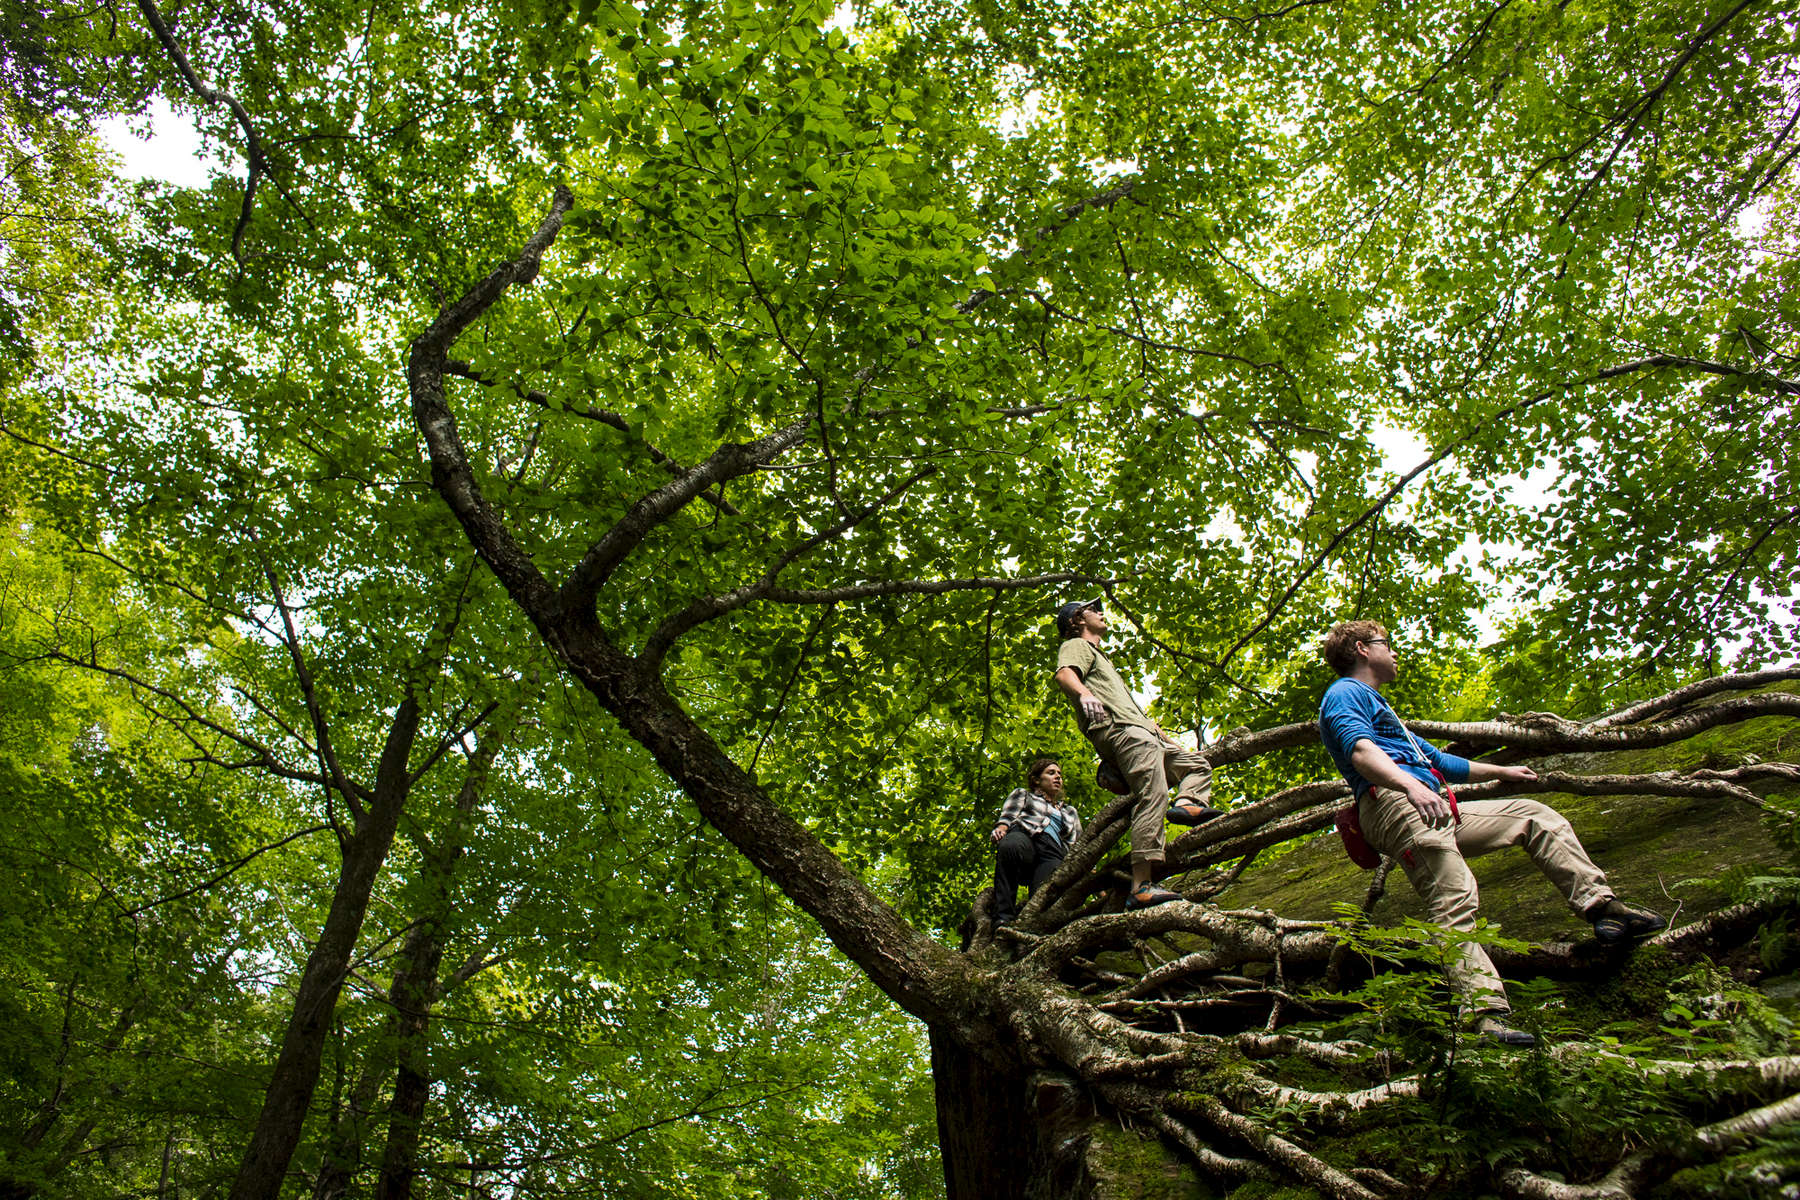 Jam Creative heads into the woods to capture vermonters climbing in the trees for a IASO Goods lifestyle product photo shoot.